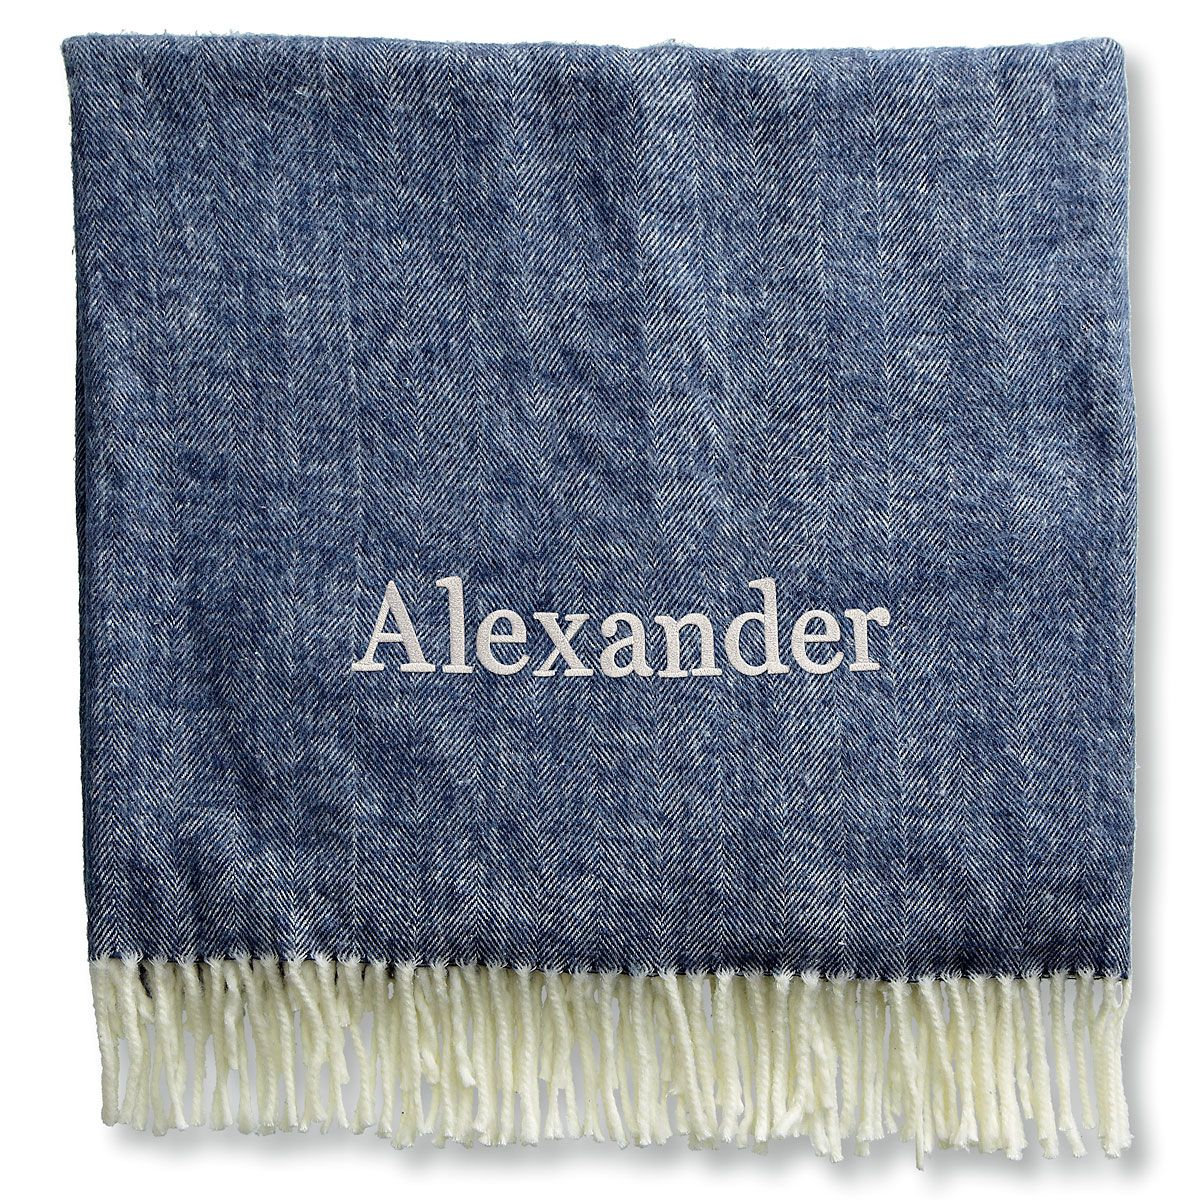 Personalized Blanket with Name-Navy-816104C